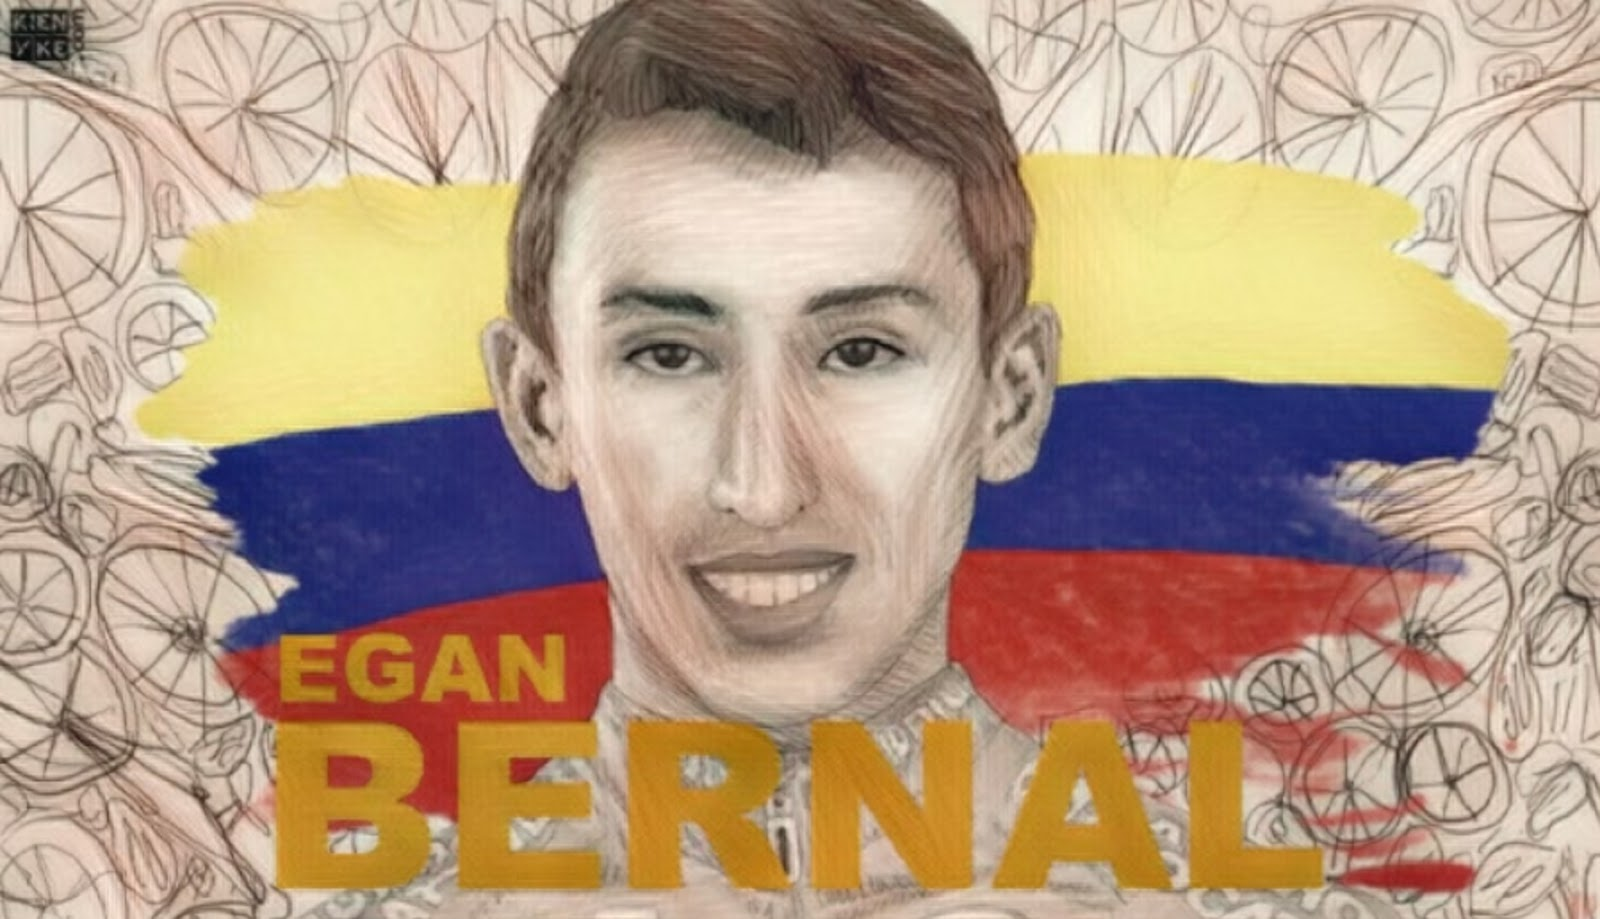 EGAN BERNAL 4